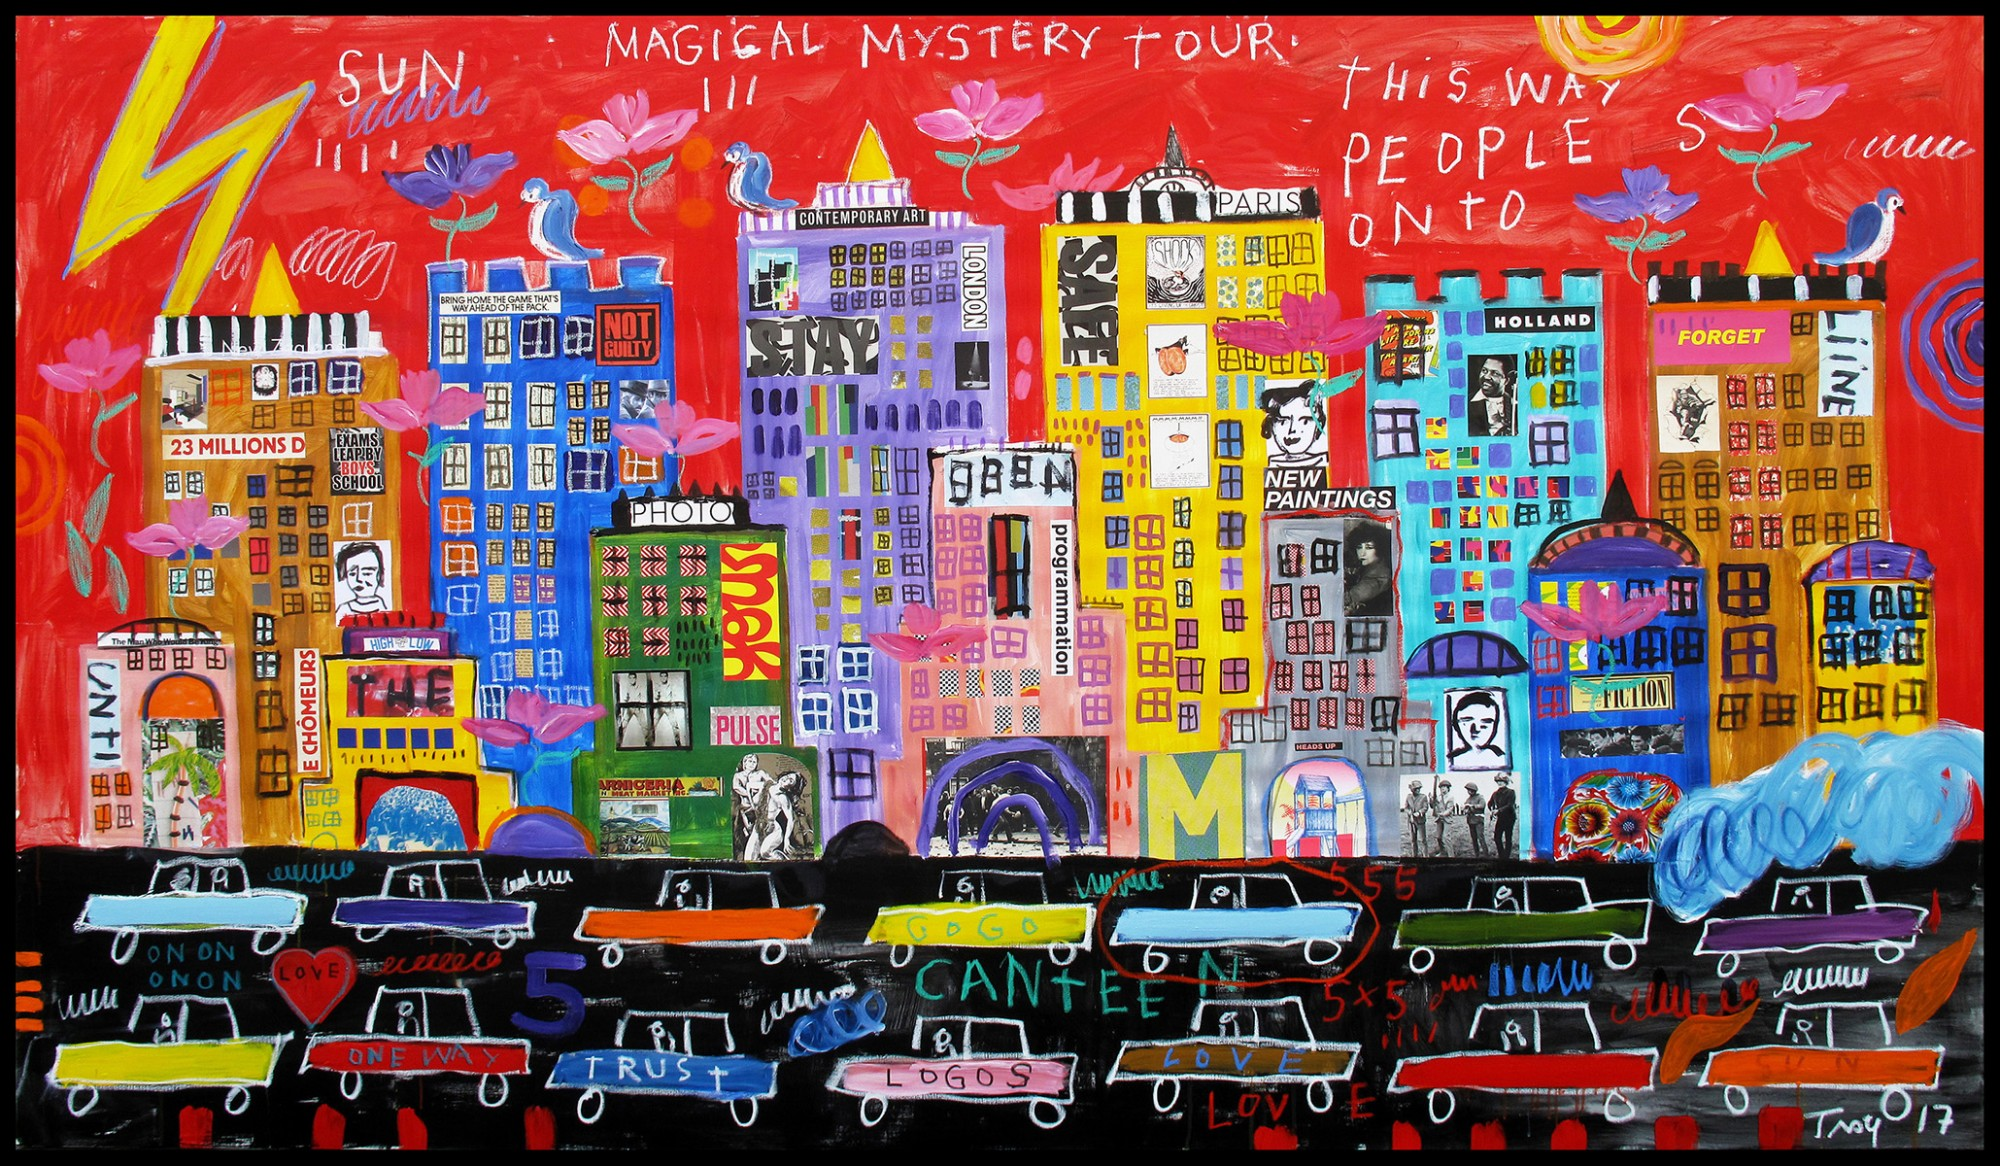 Troy Henriksen - Magical mystery tour